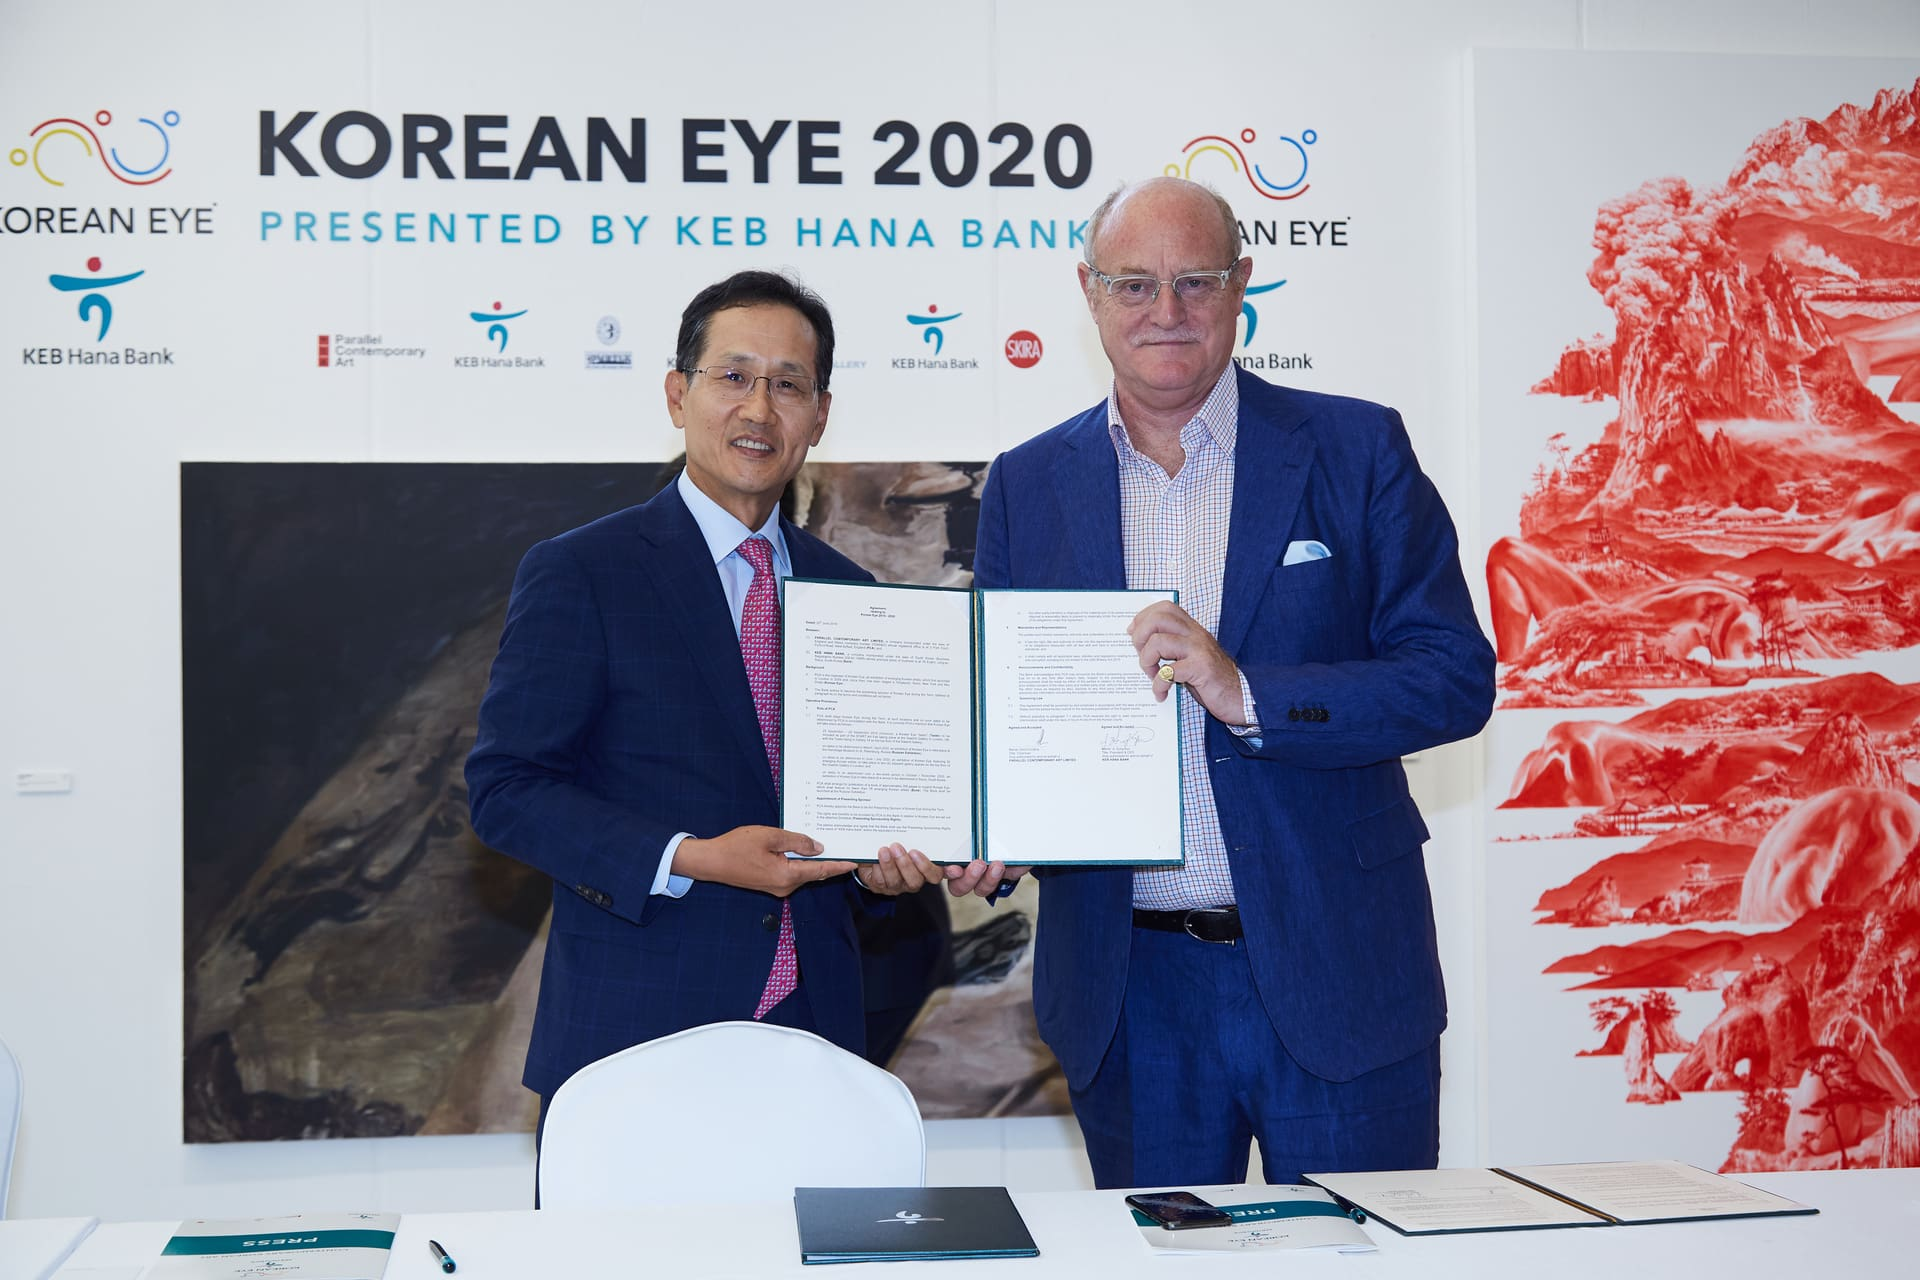 Mr Ji Sung Kyu, President and CEO KEB Hana Bank and Mr David Ciclitira at the launch of Korean Eye 2020